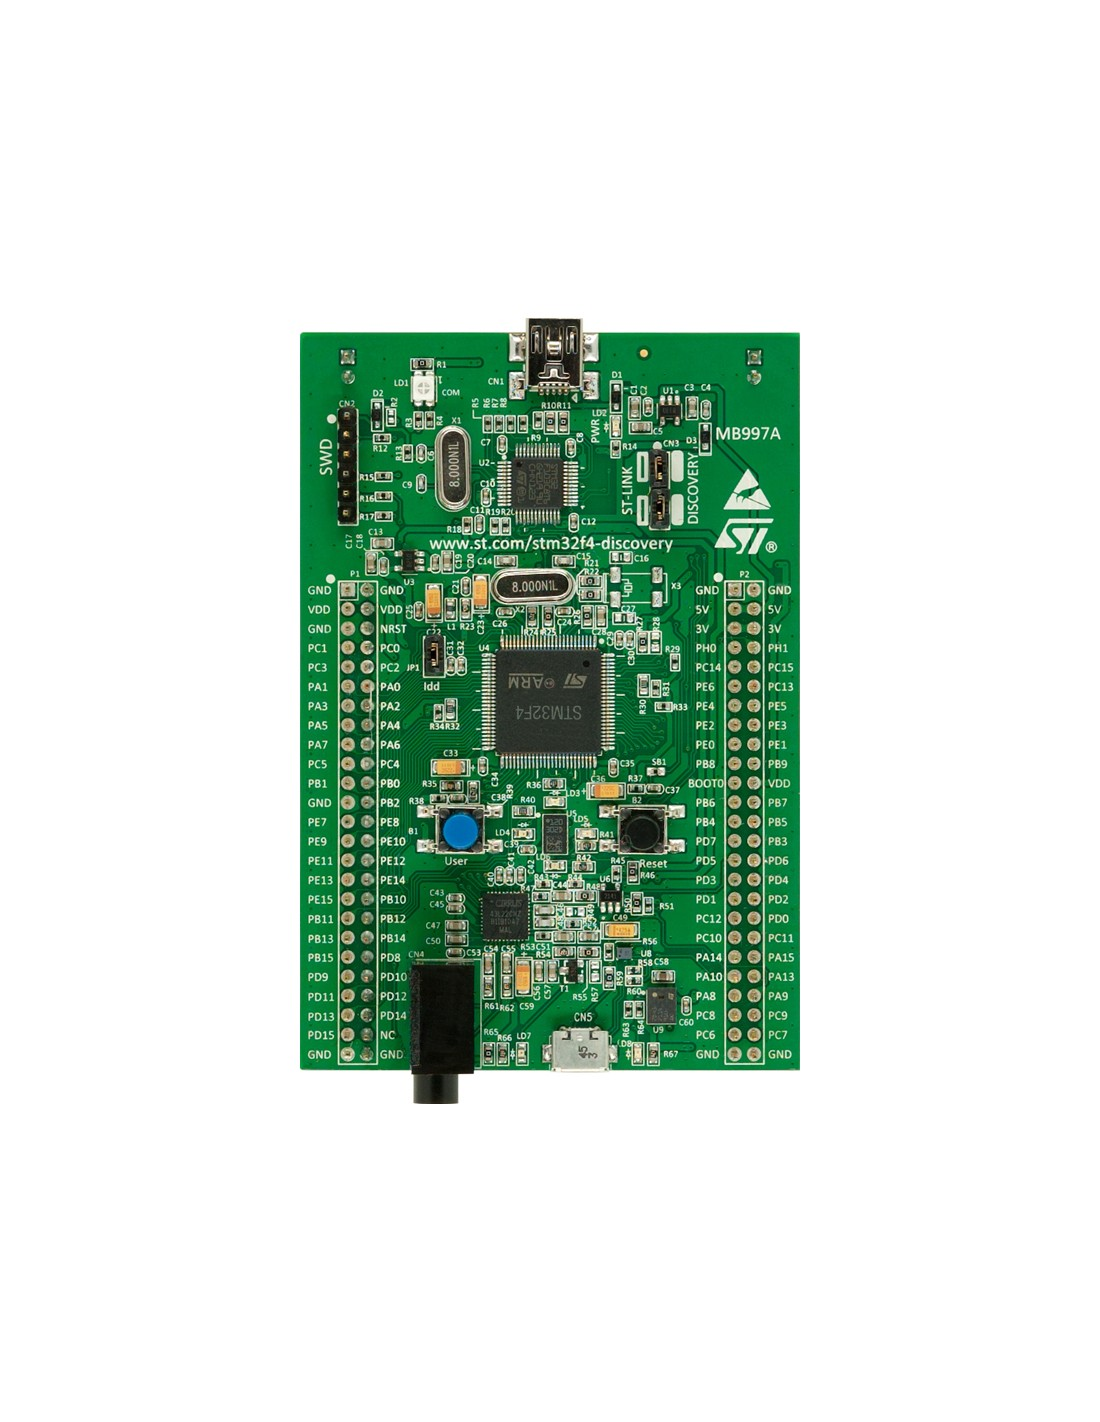 STM32F4 Discovery (STM32F4 Discovery Board STM32F407VG MCU: Discovery kit  for STM32 F4 series)